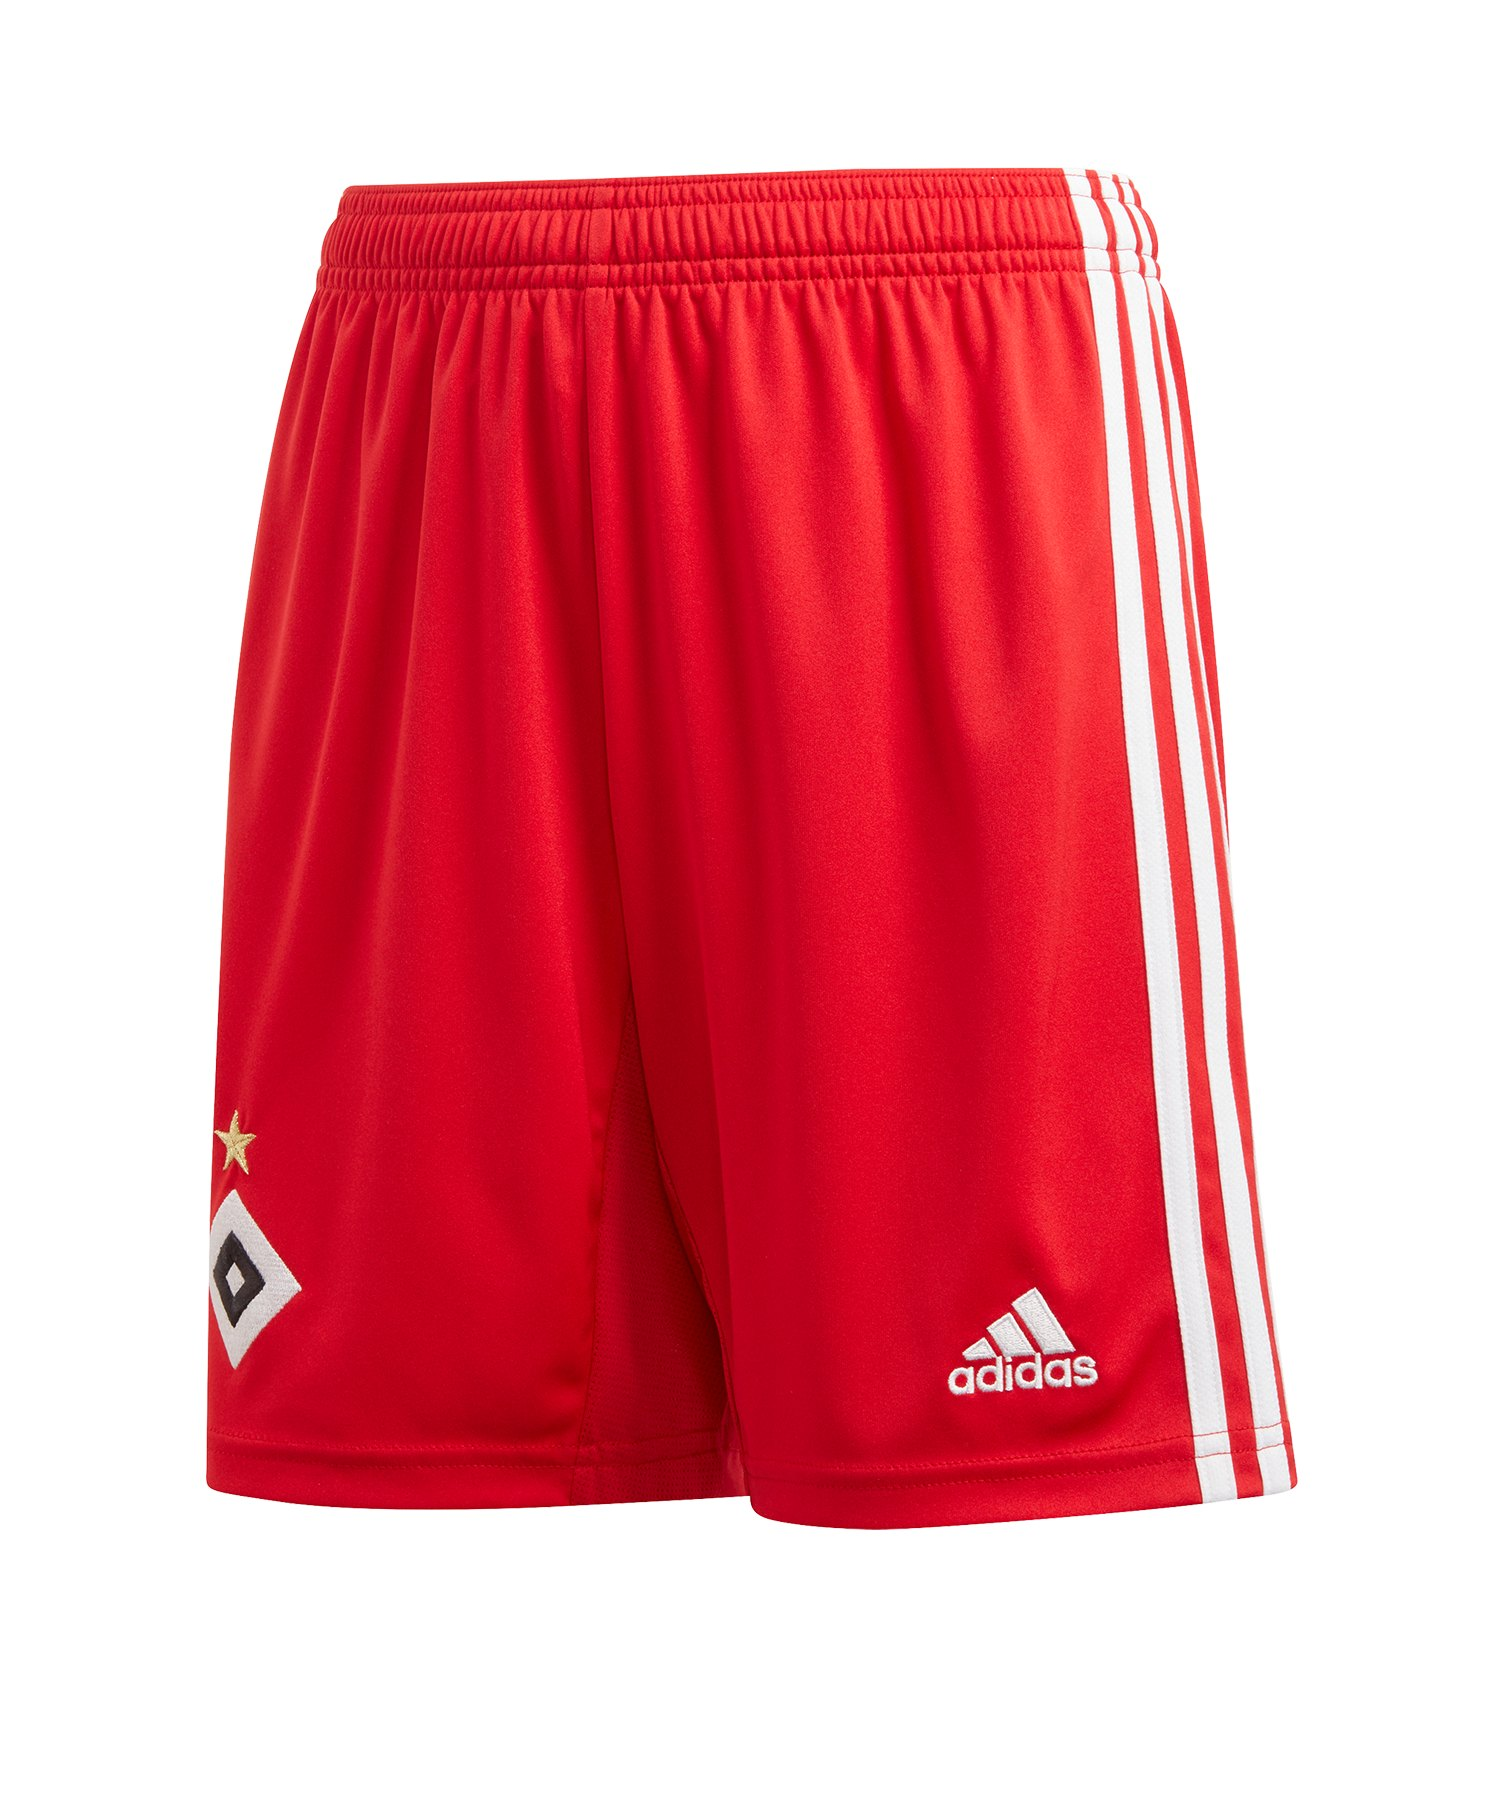 adidas Hamburger SV Short Home 2019/2020 Rot Weiss - Rot